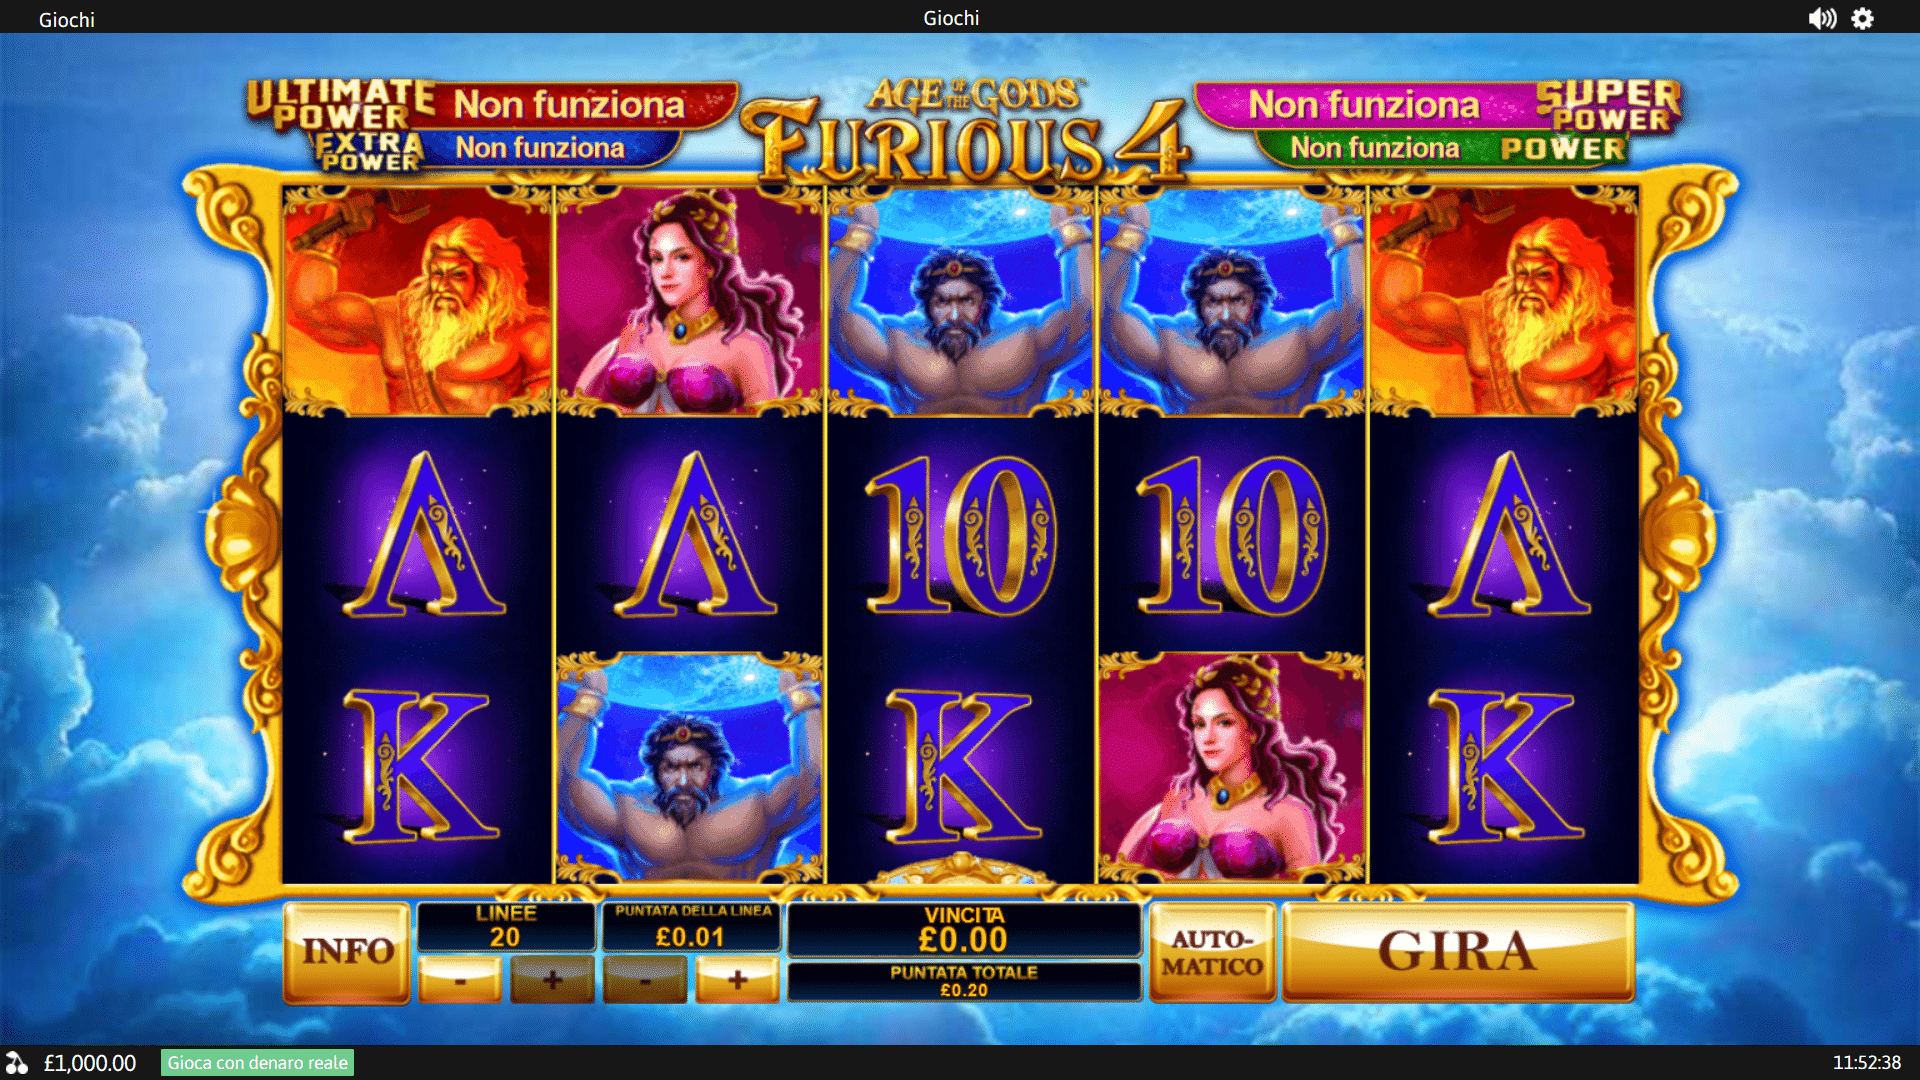 Slot Age of the Gods: Furious 4